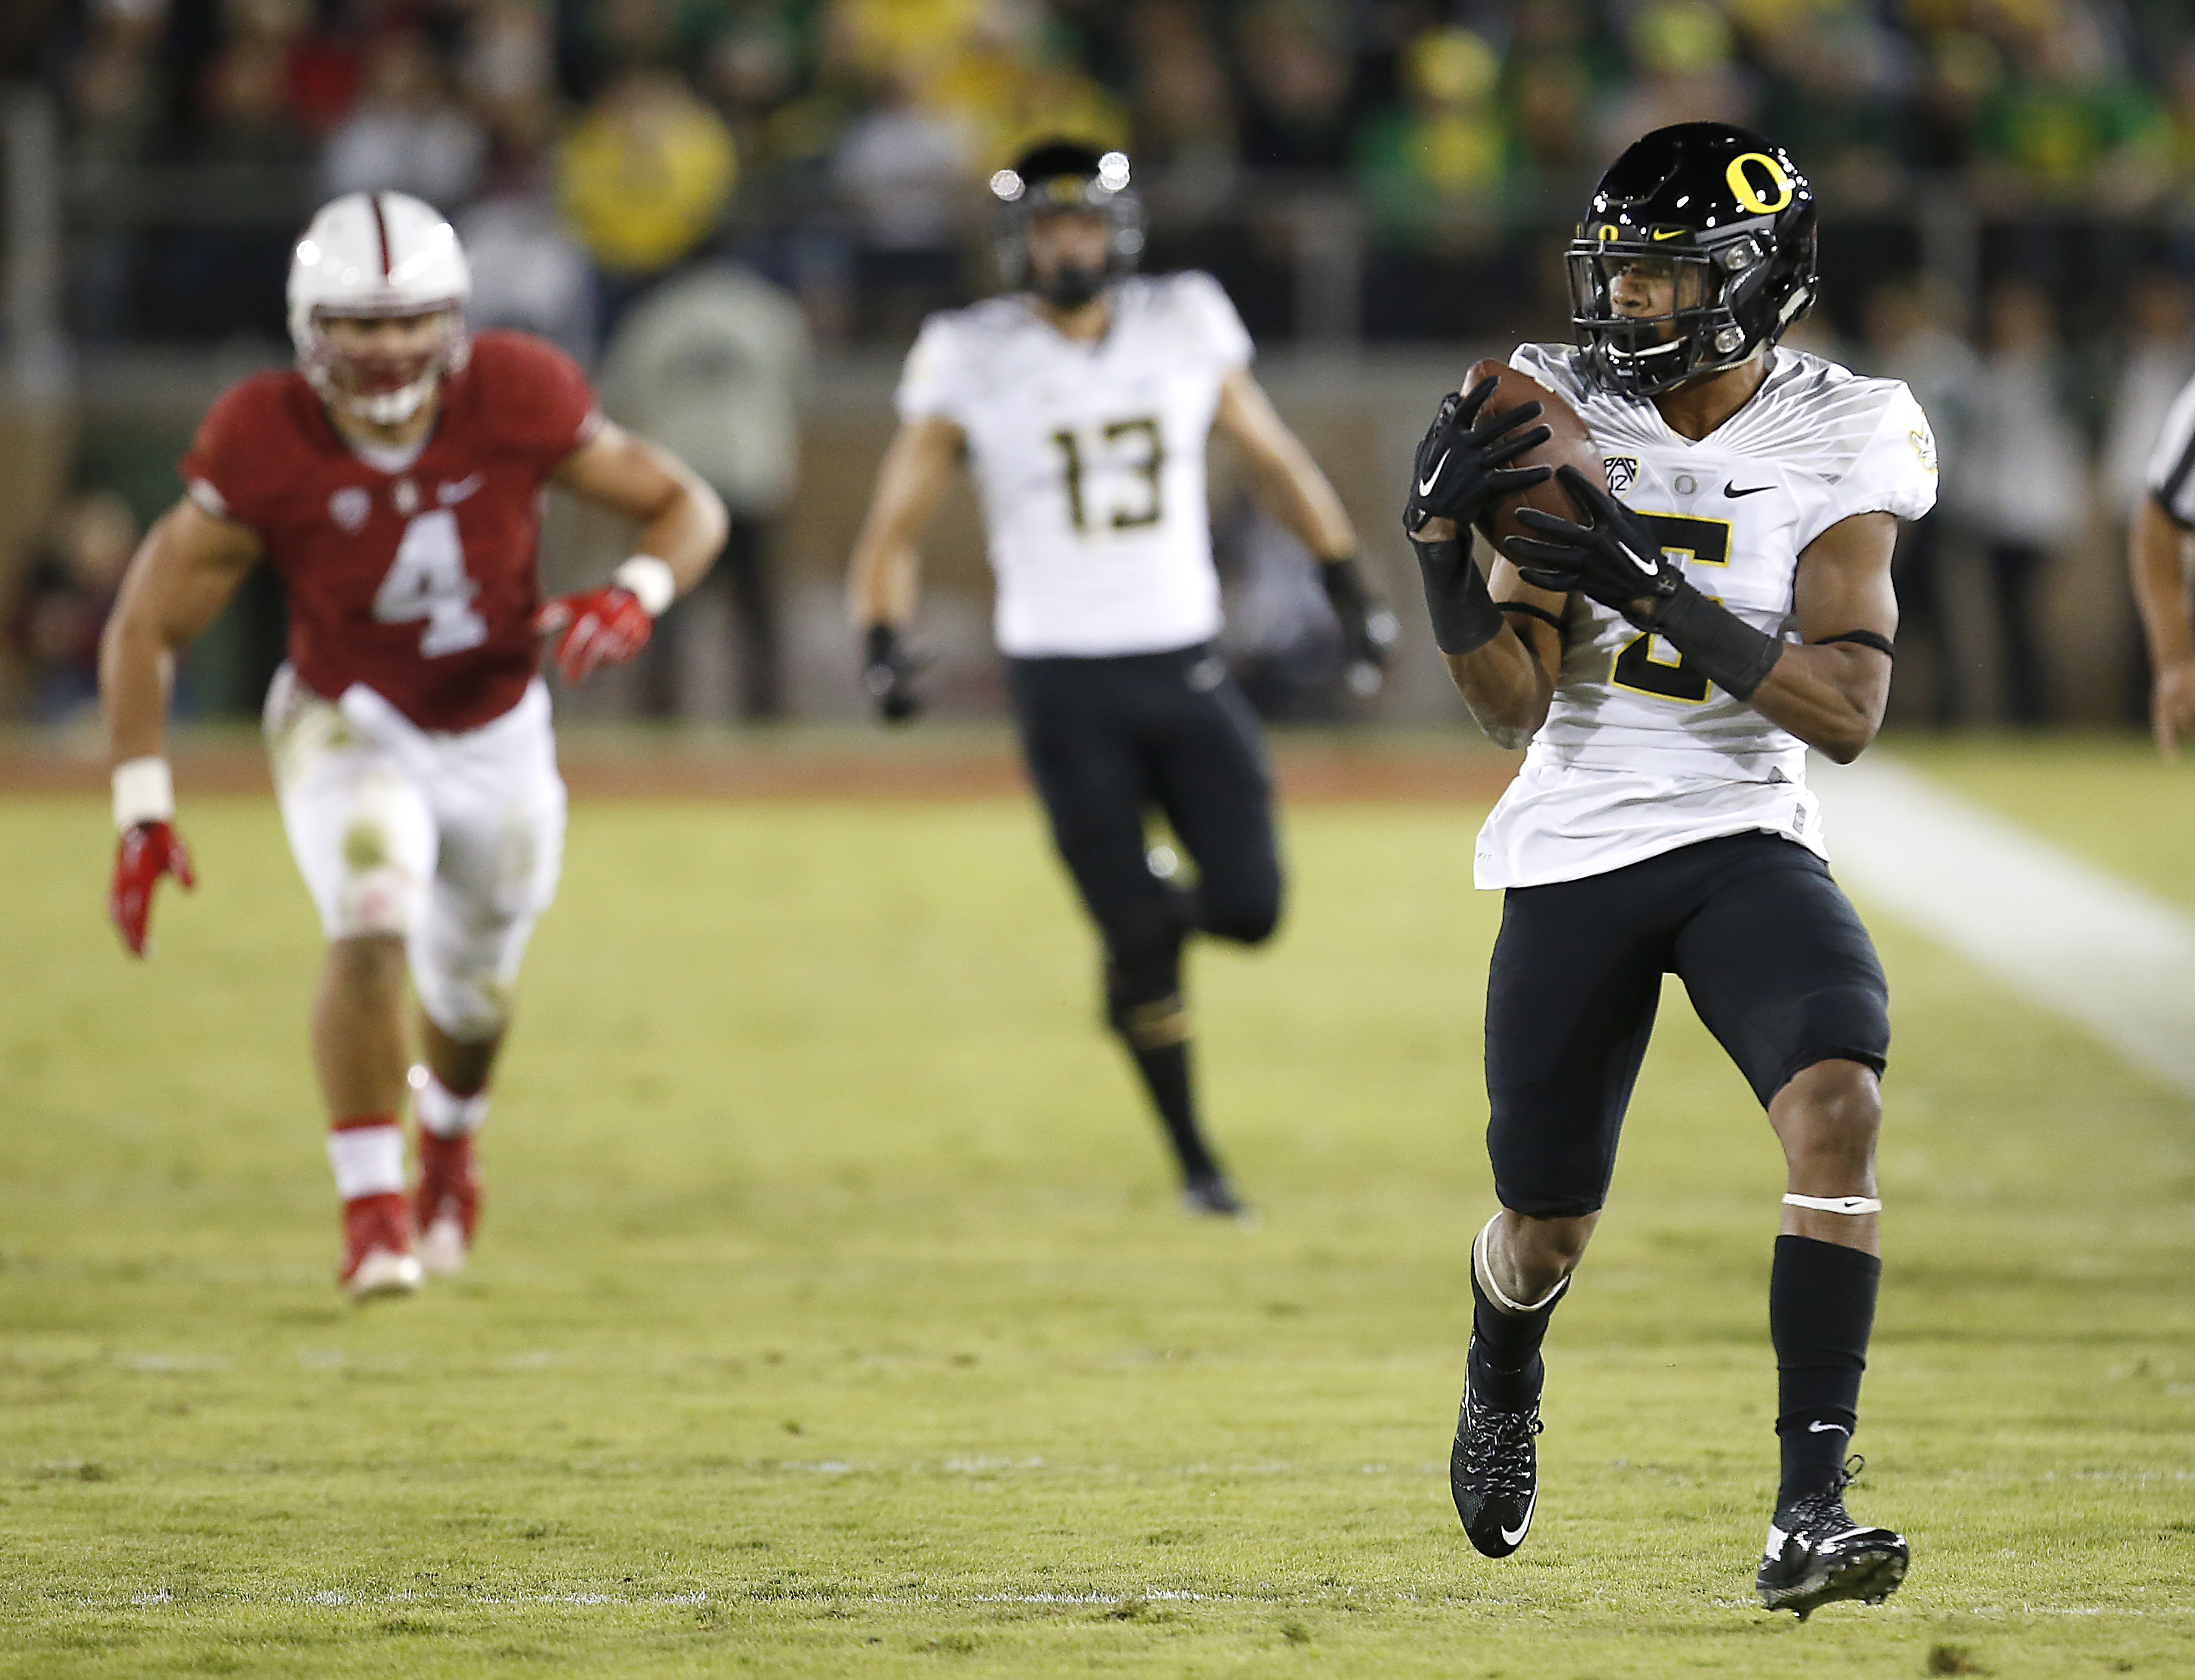 Oregon running back Taj Griffin (5) catches a pass for a touchdown against Stanford during the second half of an NCAA college football game Saturday, Nov. 14, 2015, in Stanford, Calif. (AP Photo/Tony Avelar)